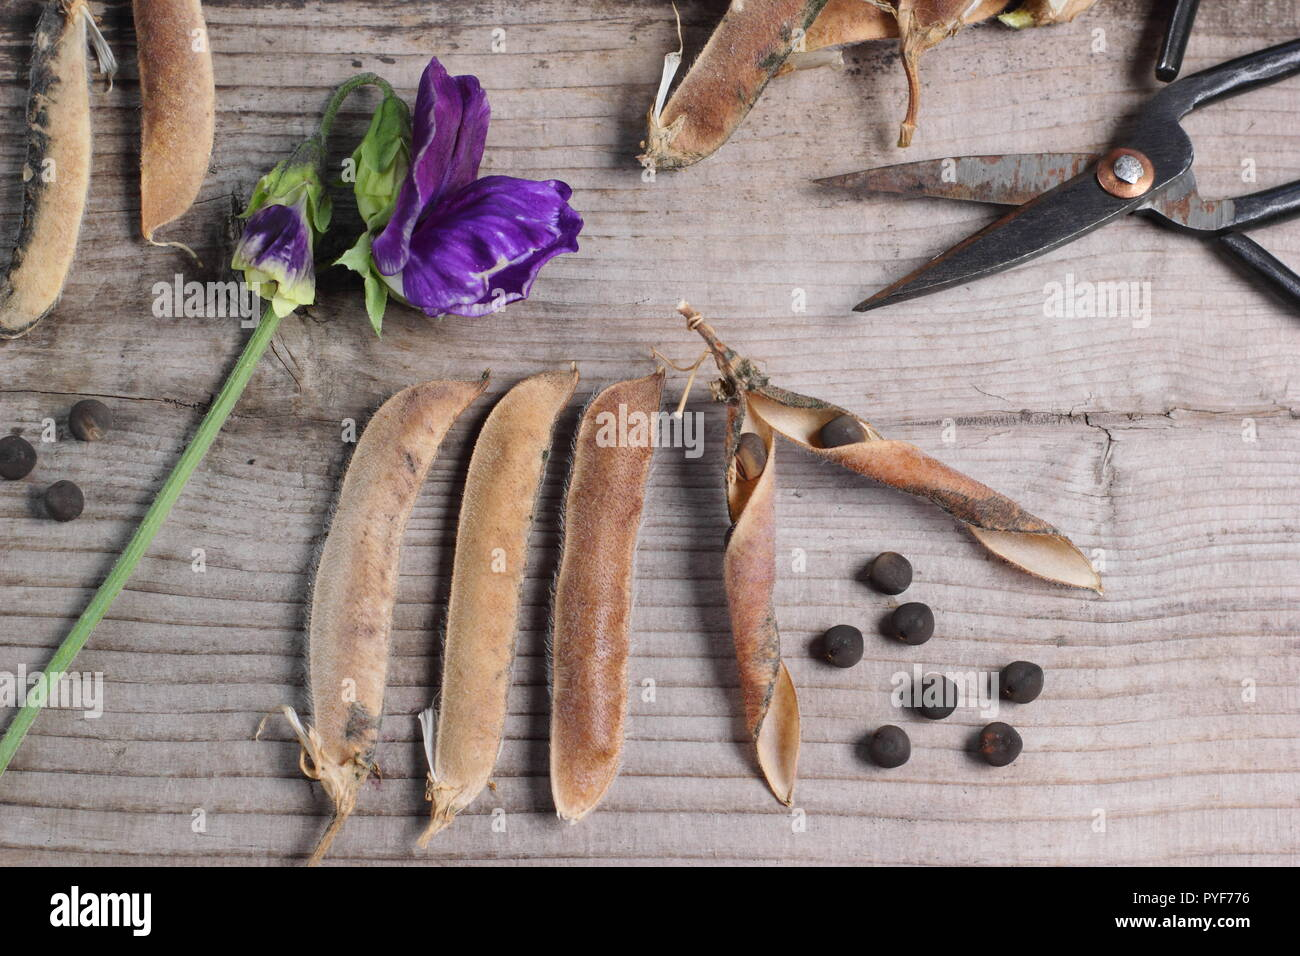 Lathyrus odoratus. Sweet pea 'Spencer' dried seed pods and seeds collected for future planting, autumn, UK - Stock Image